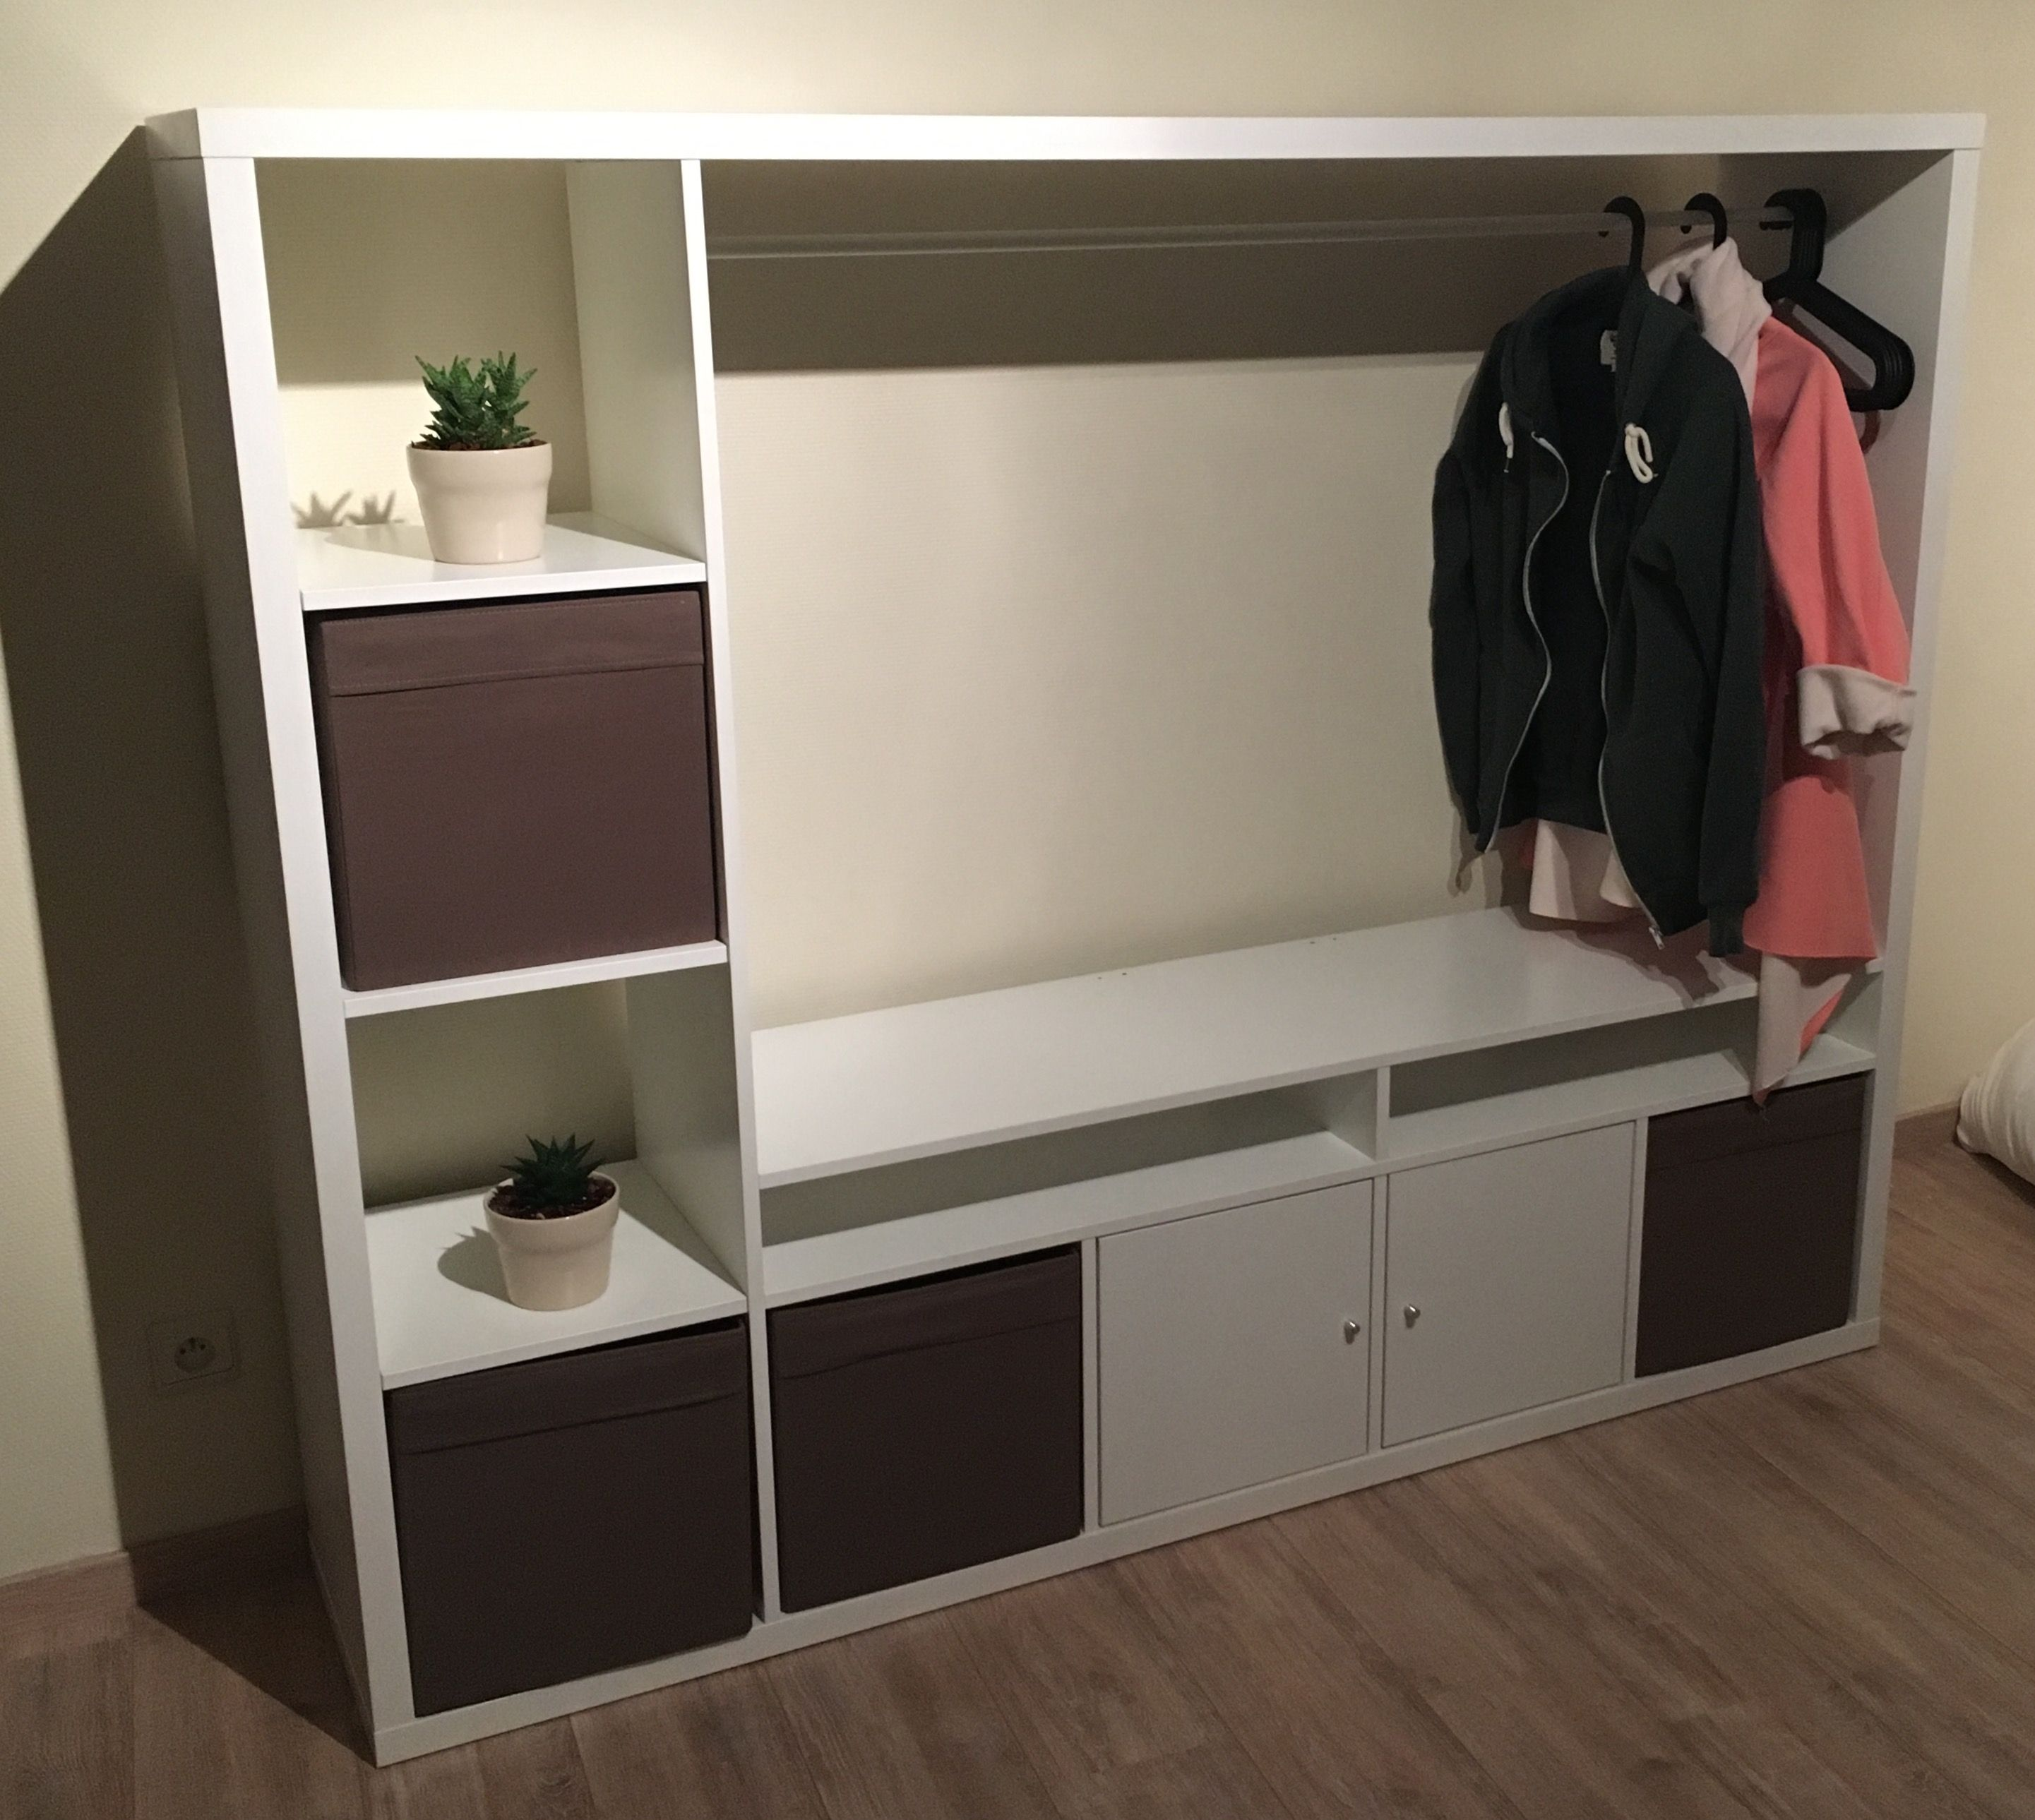 Ikea Lappland My Own Ikea Hack ! #lappland Tv Furniture Turned Into A